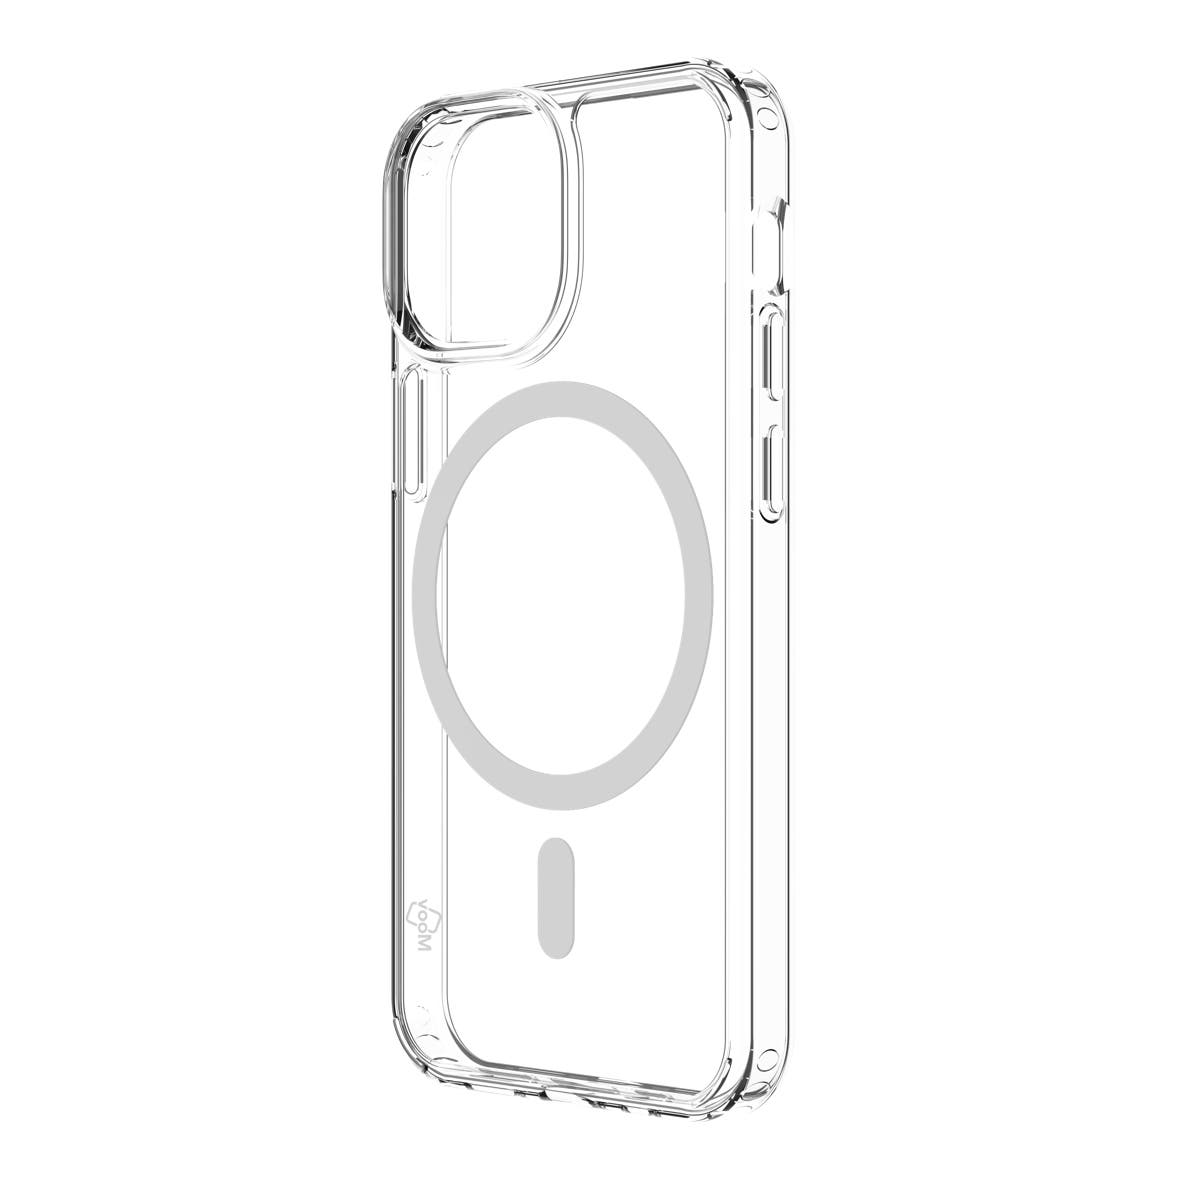 Moov Case with MagSafe for iPhone 13 mini - Clear